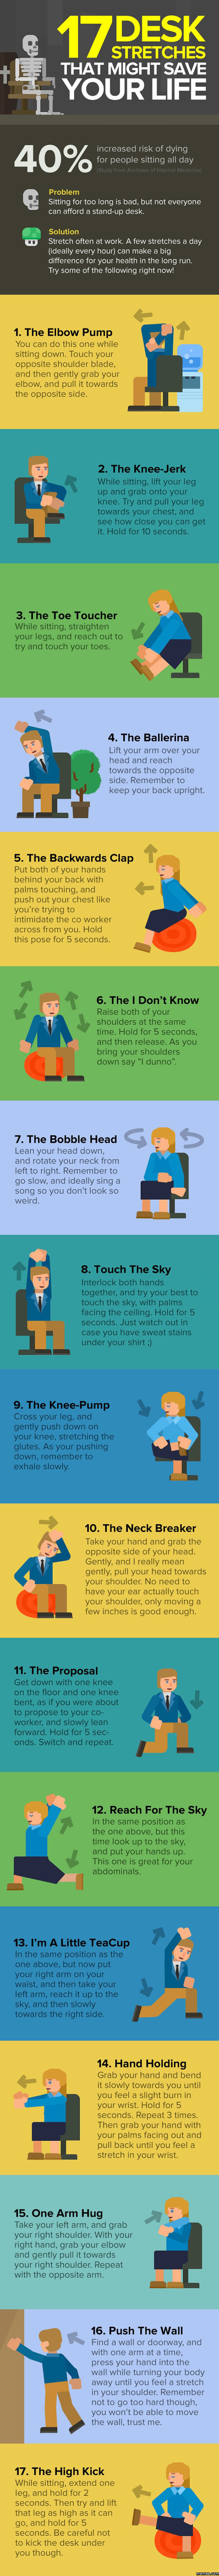 17 Desk Stretches That Might Save Your Life